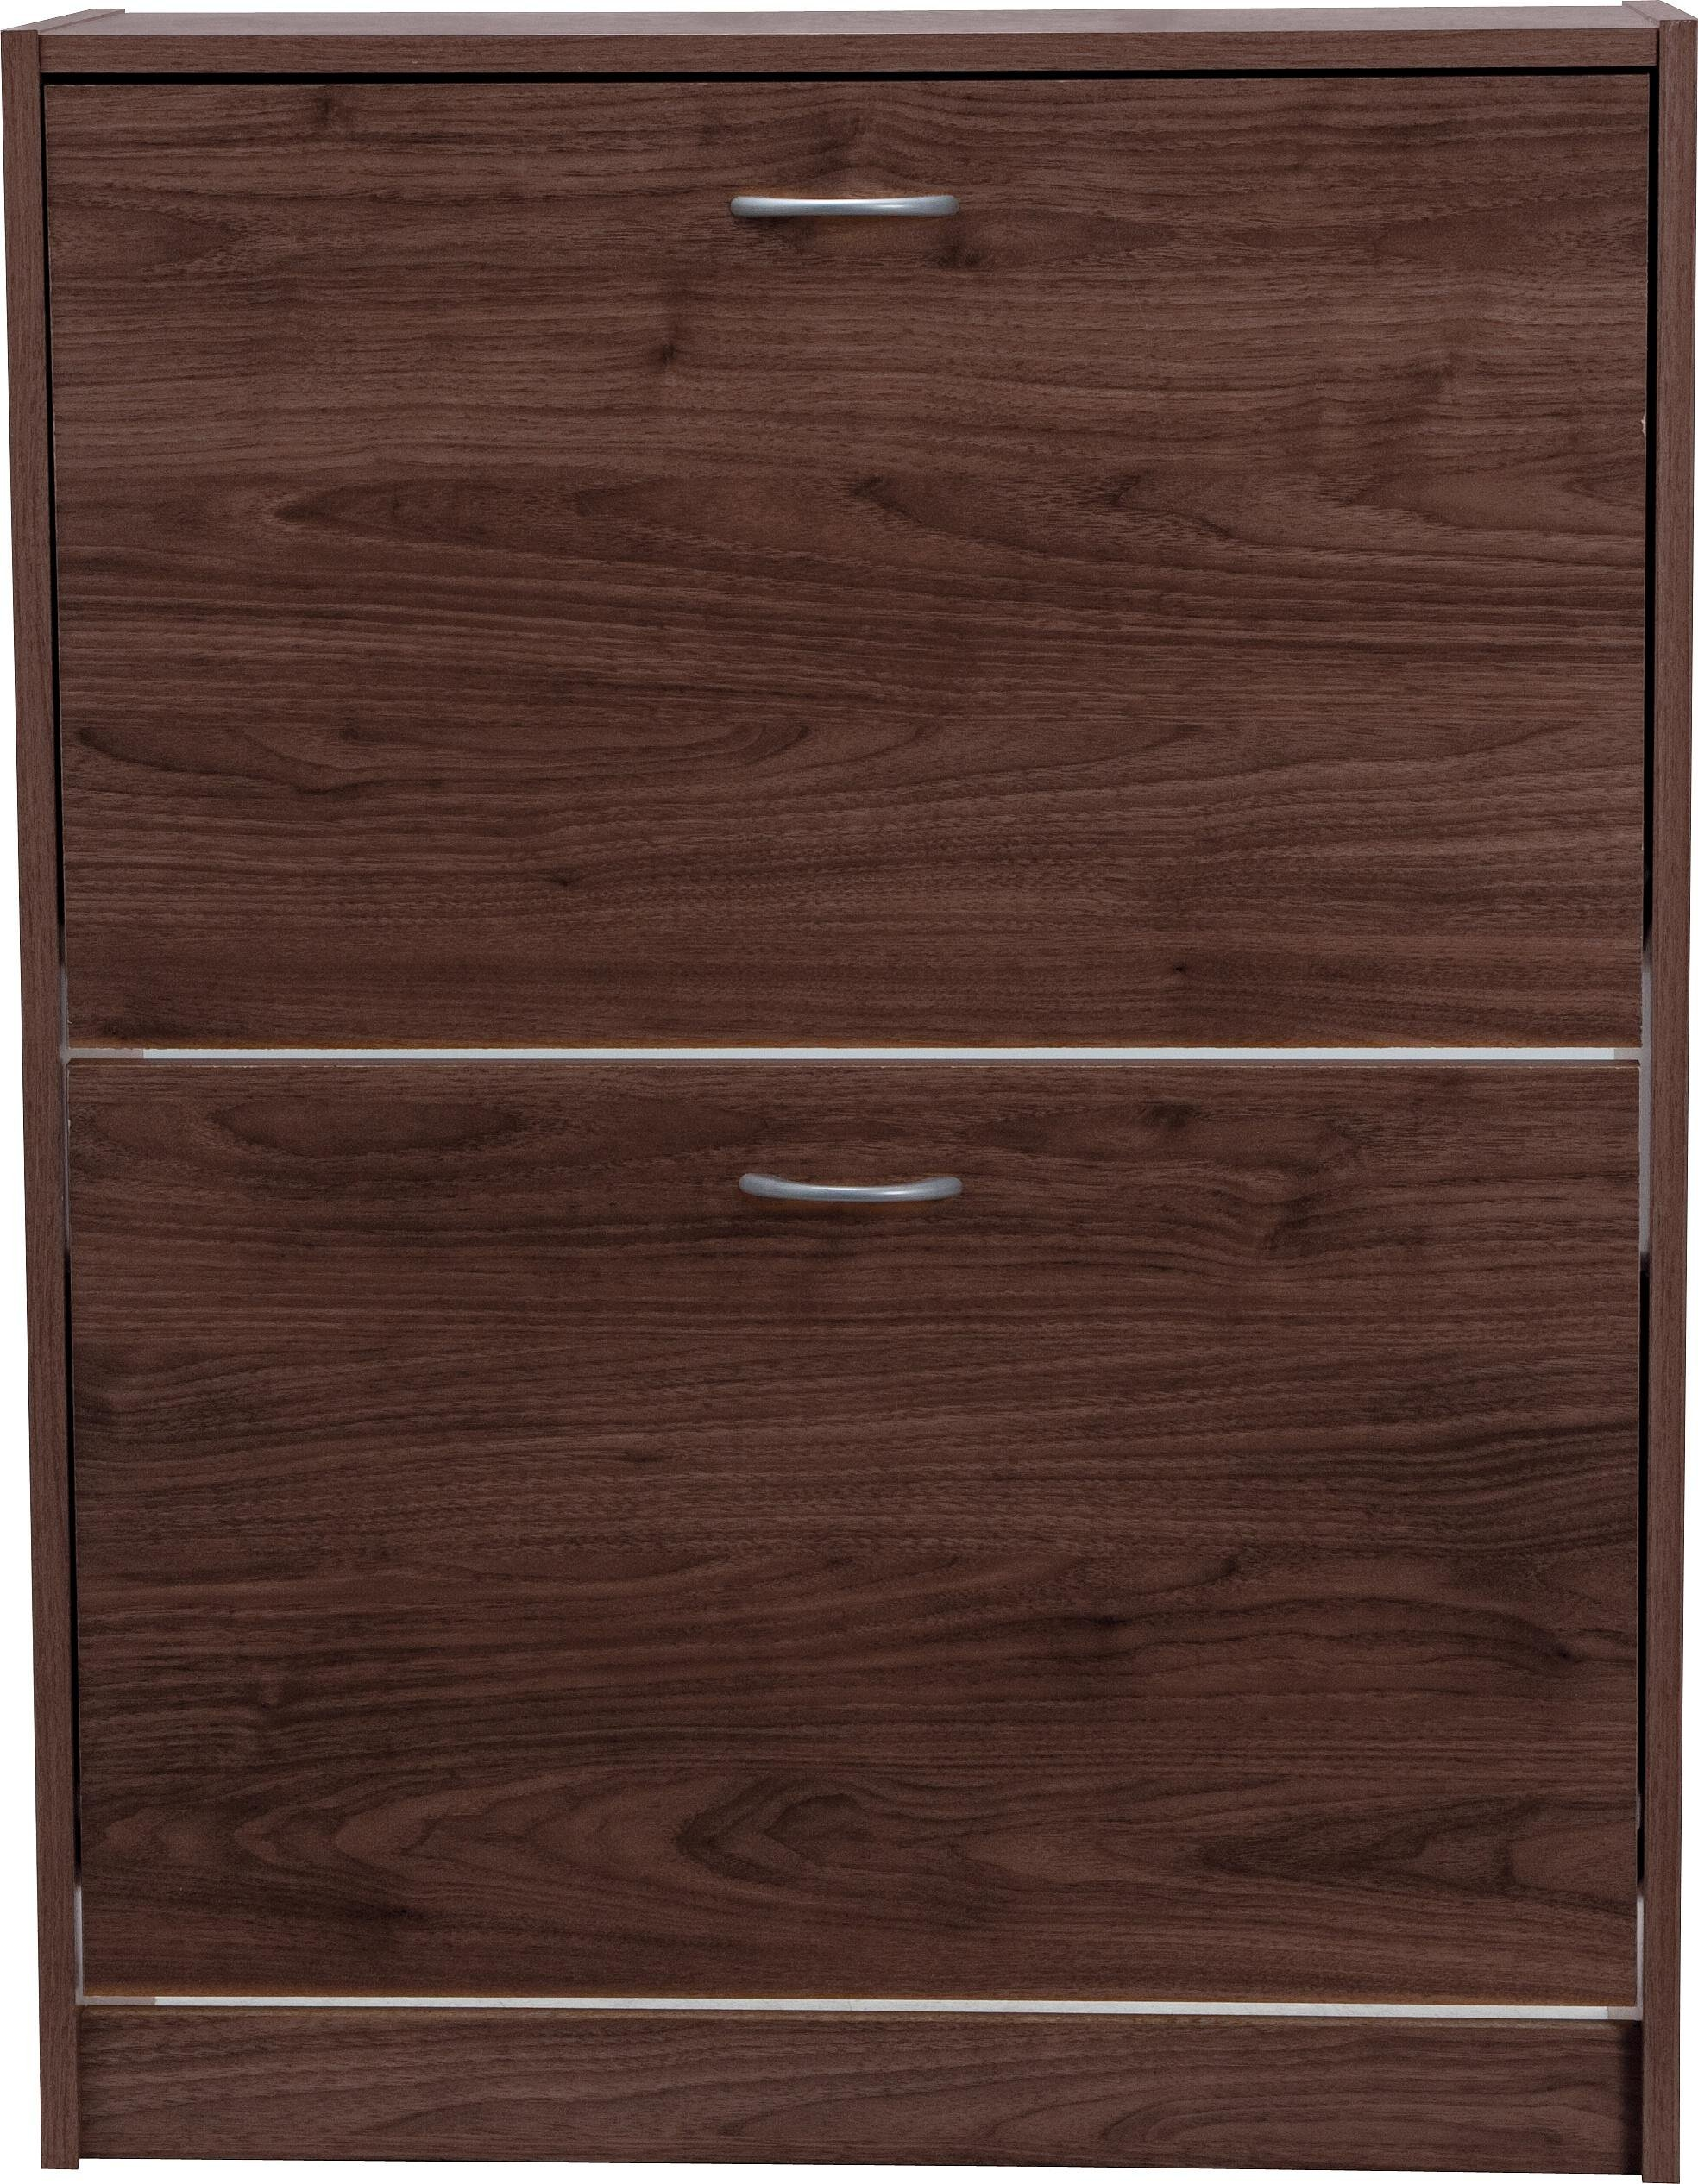 Argos Home Shoe Storage Cabinet - Walnut Effect